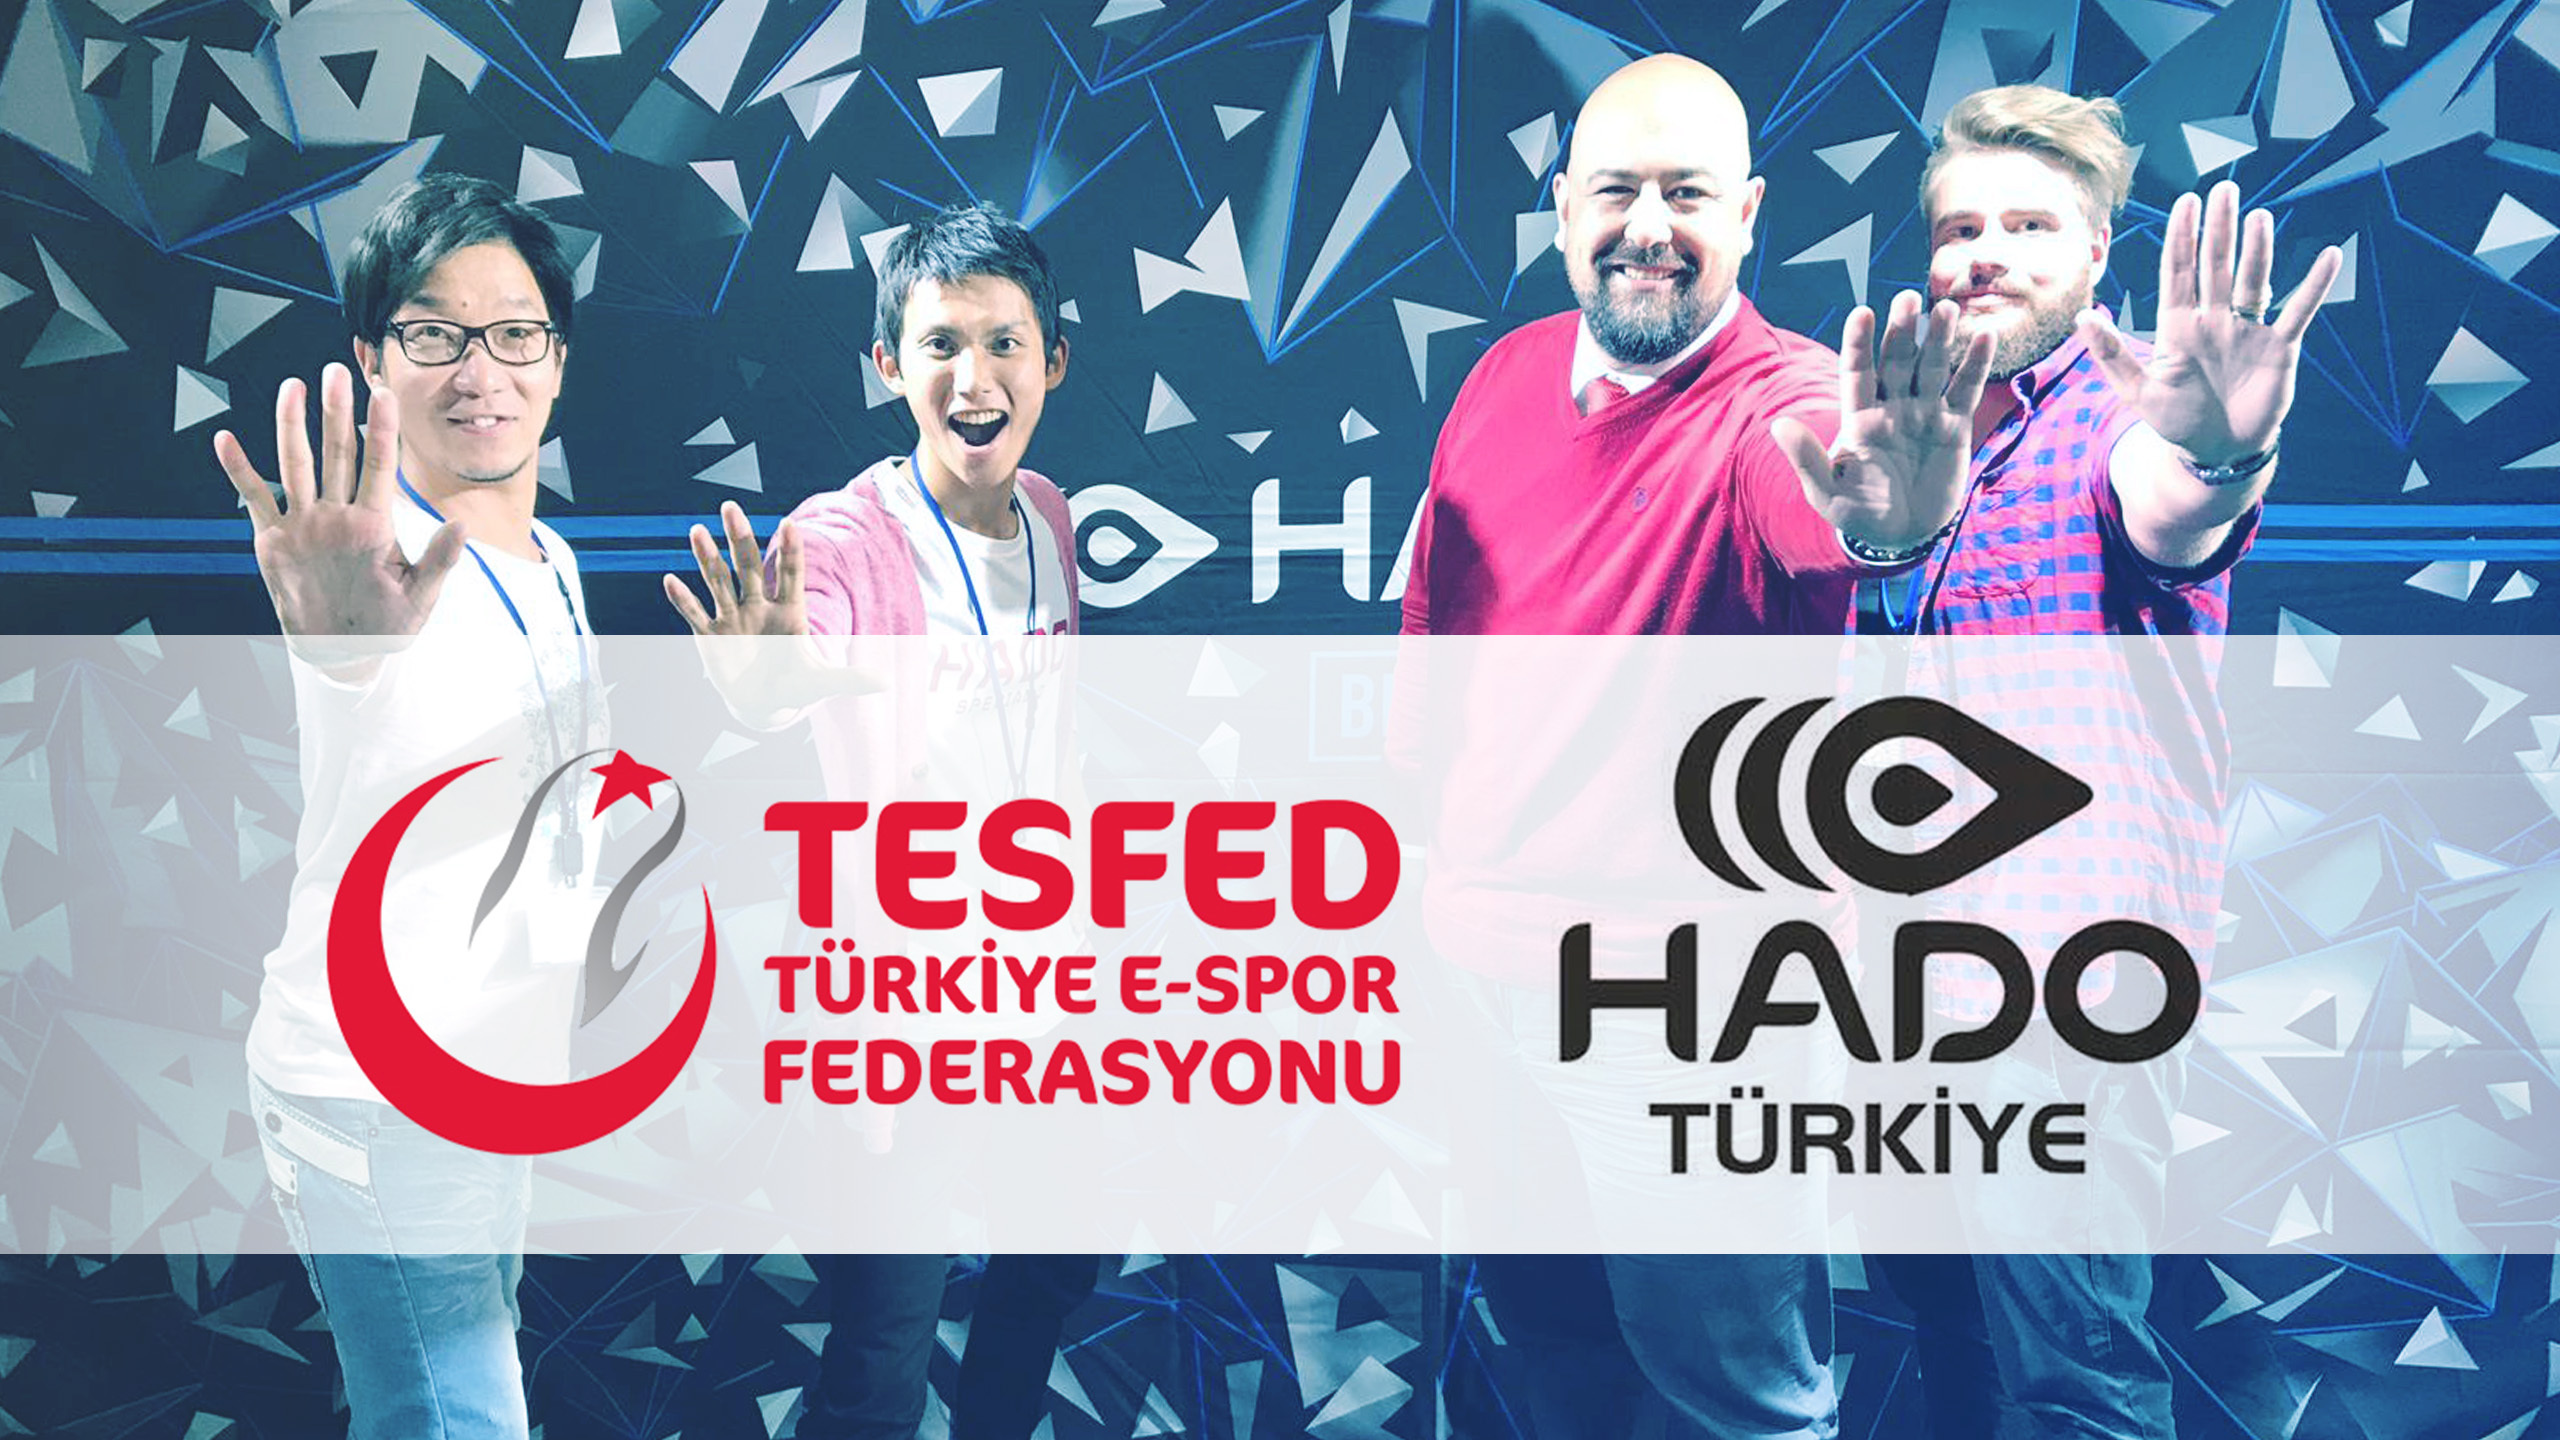 Turkey E-Sports Federation (TESFED) has concluded a partnership agreement with HADO Turkey by June 18, 2020.